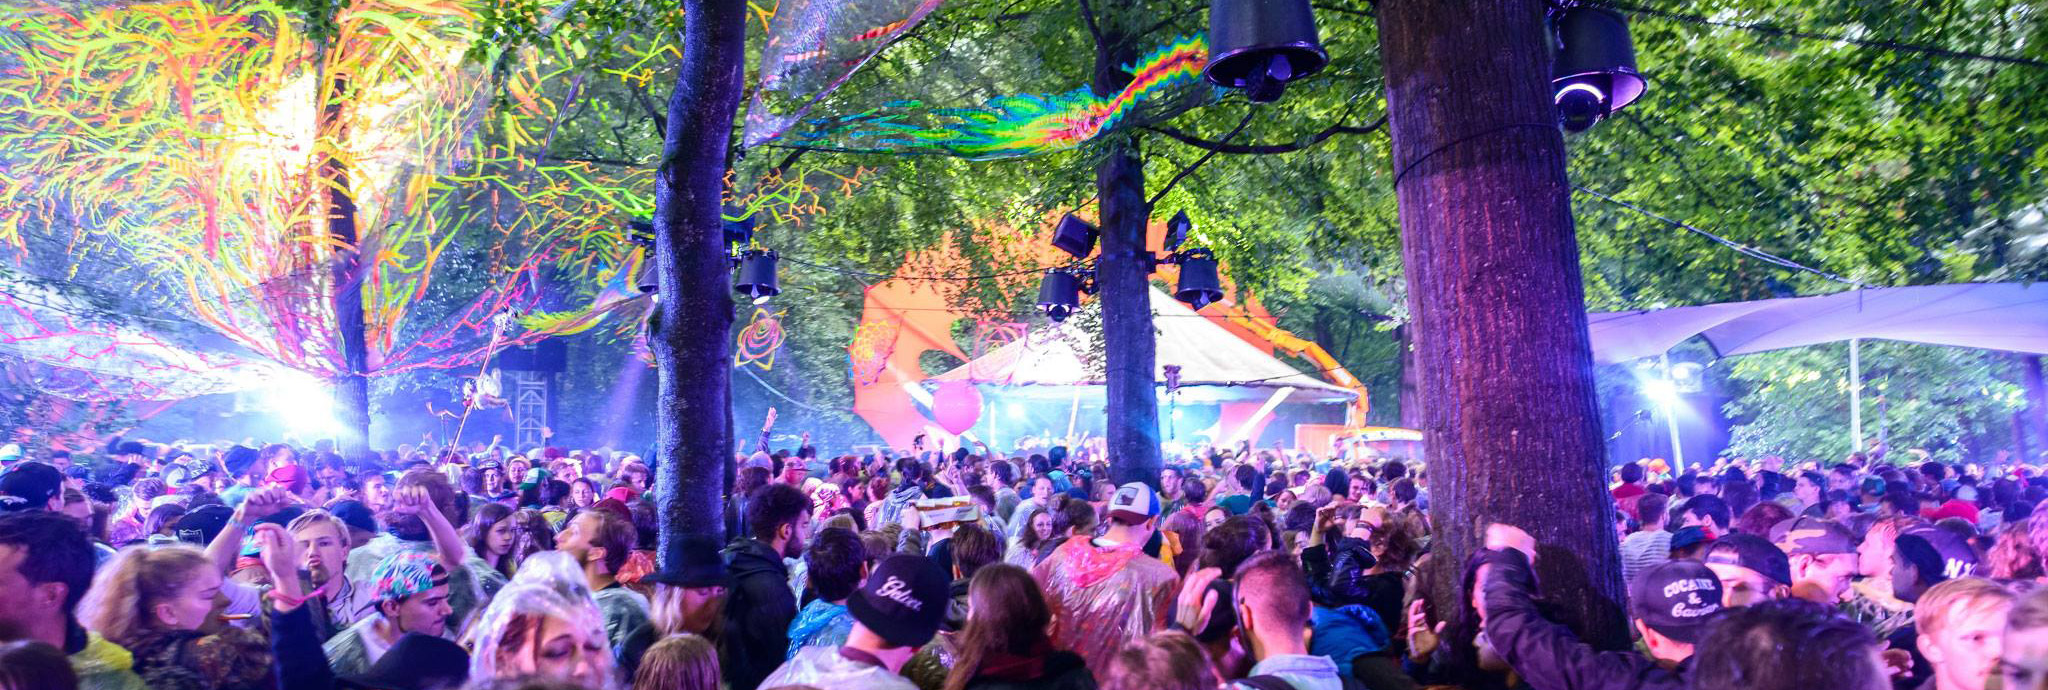 Into the Woods Festival 2016: Ticket Announcement